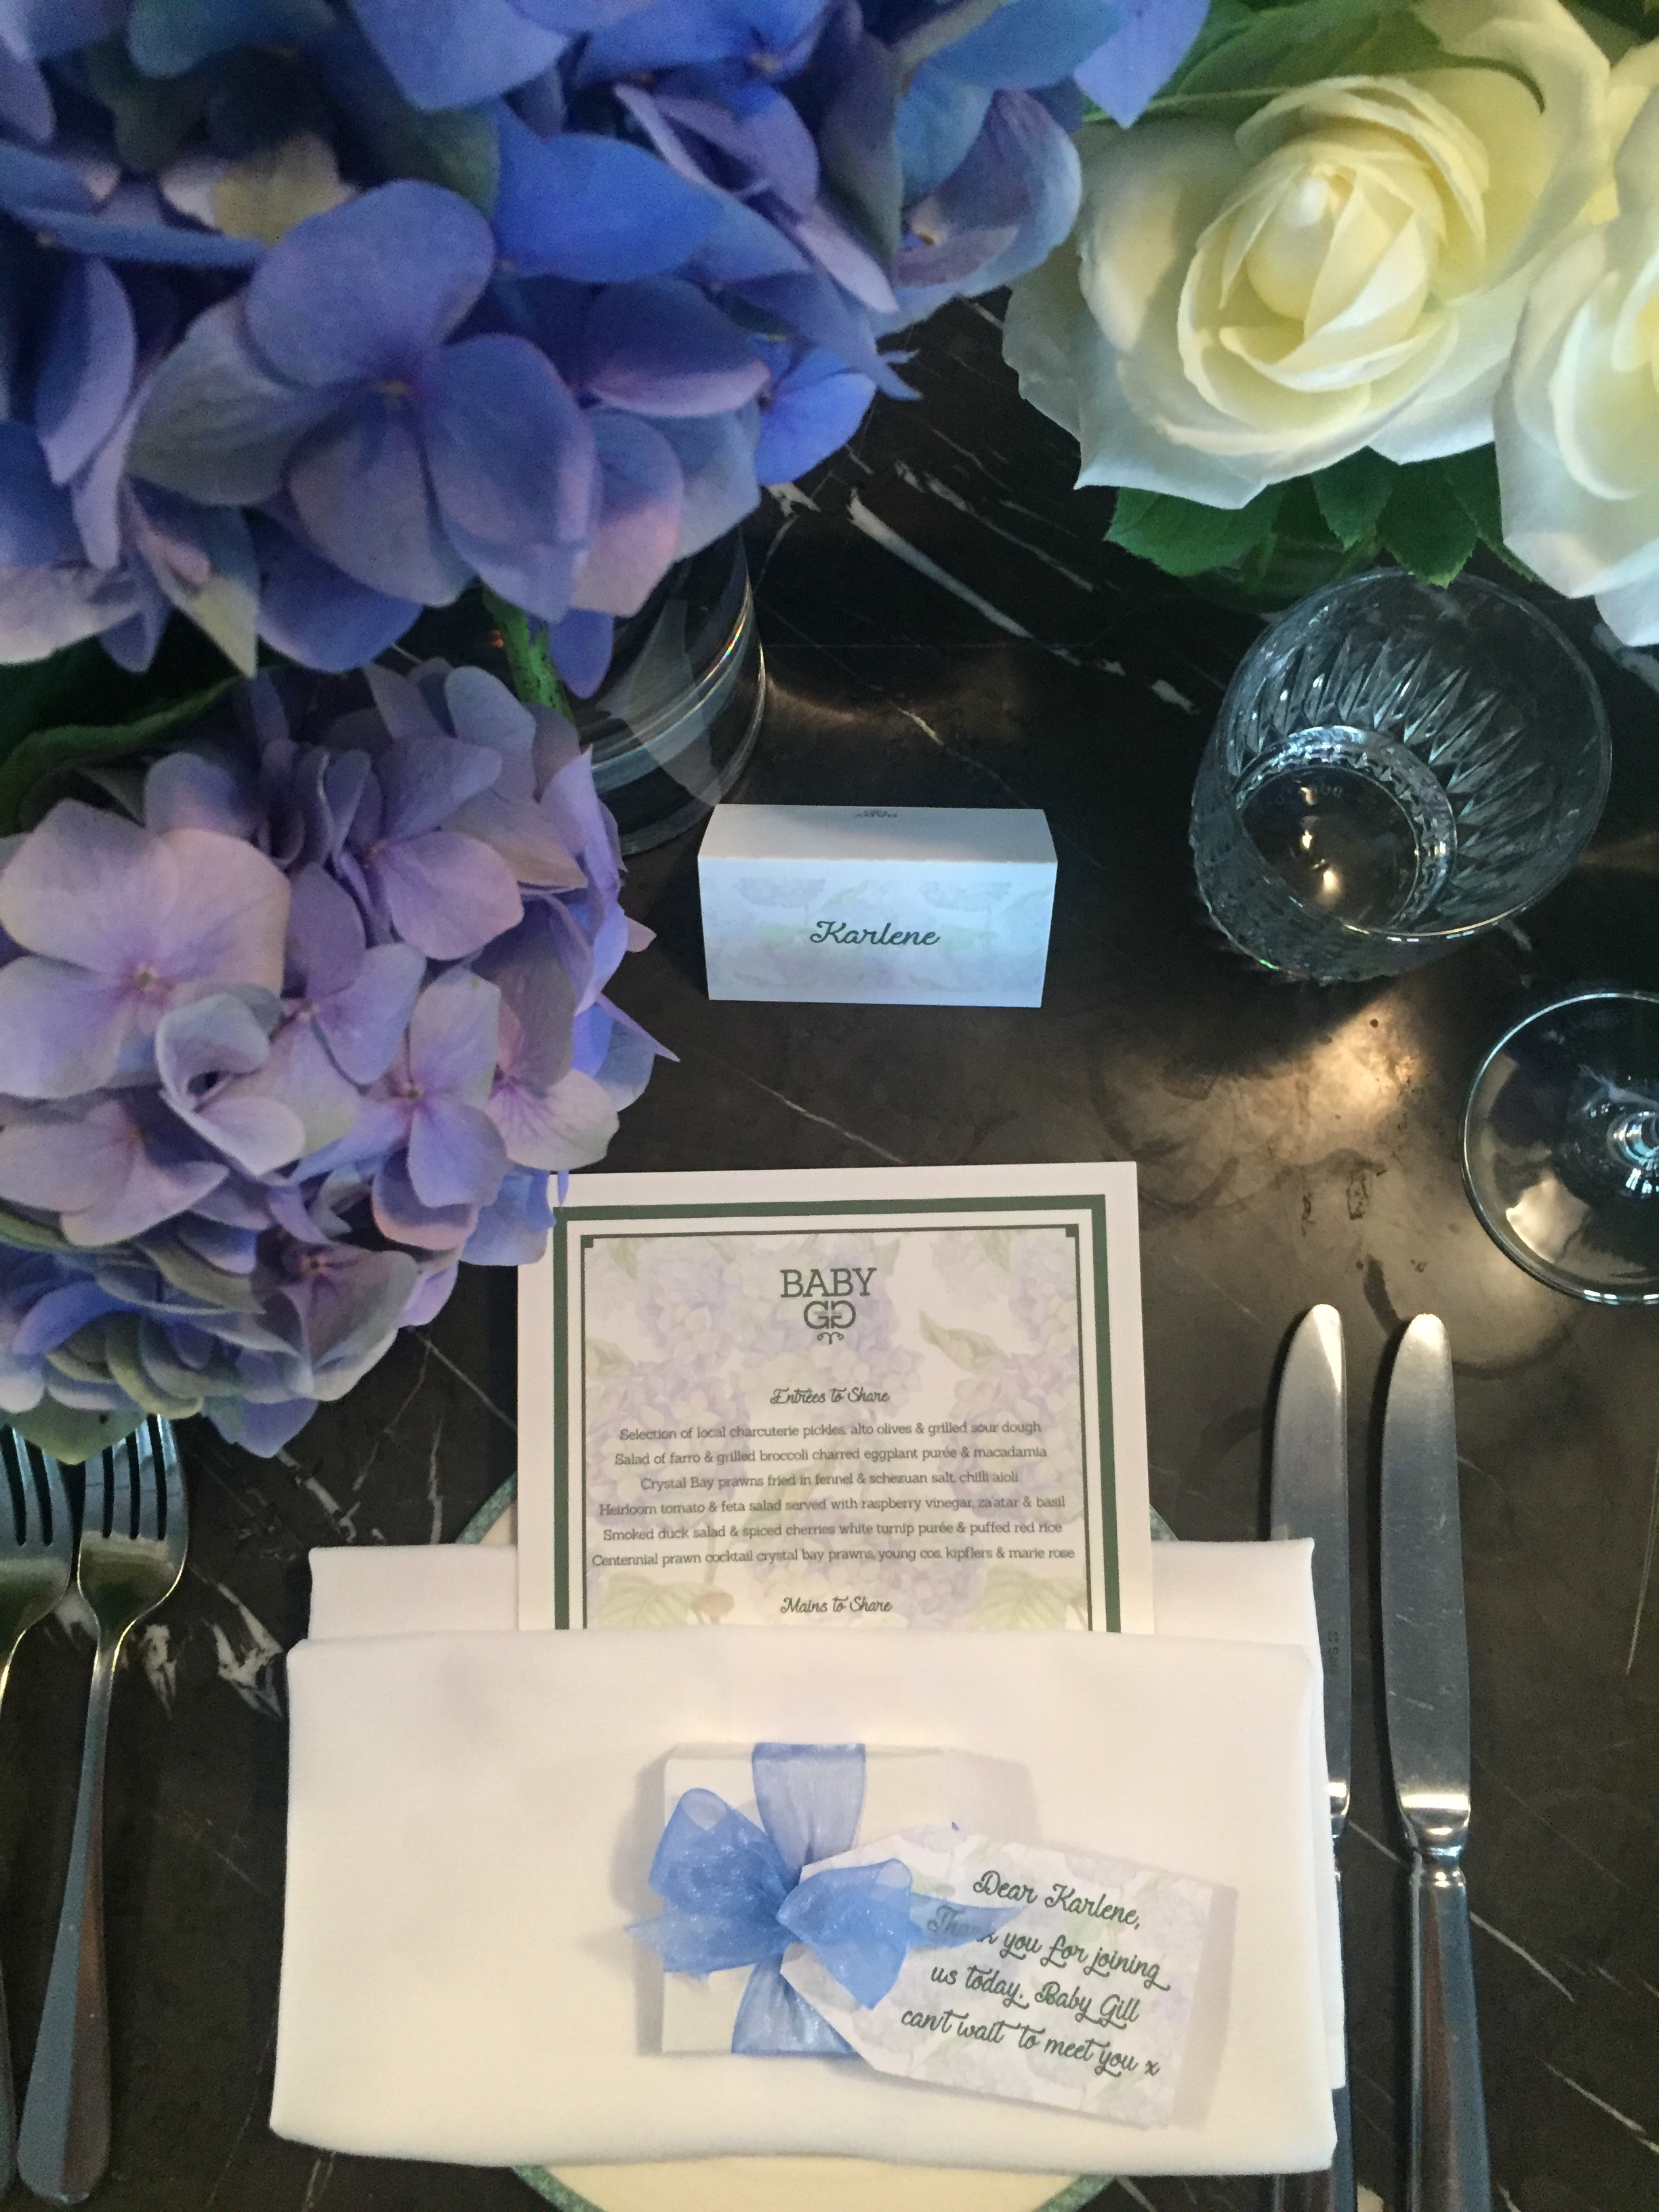 Baby Shower for a Baby Boy - Place setting inspiration - Blue hydrangea themed floral arrangement